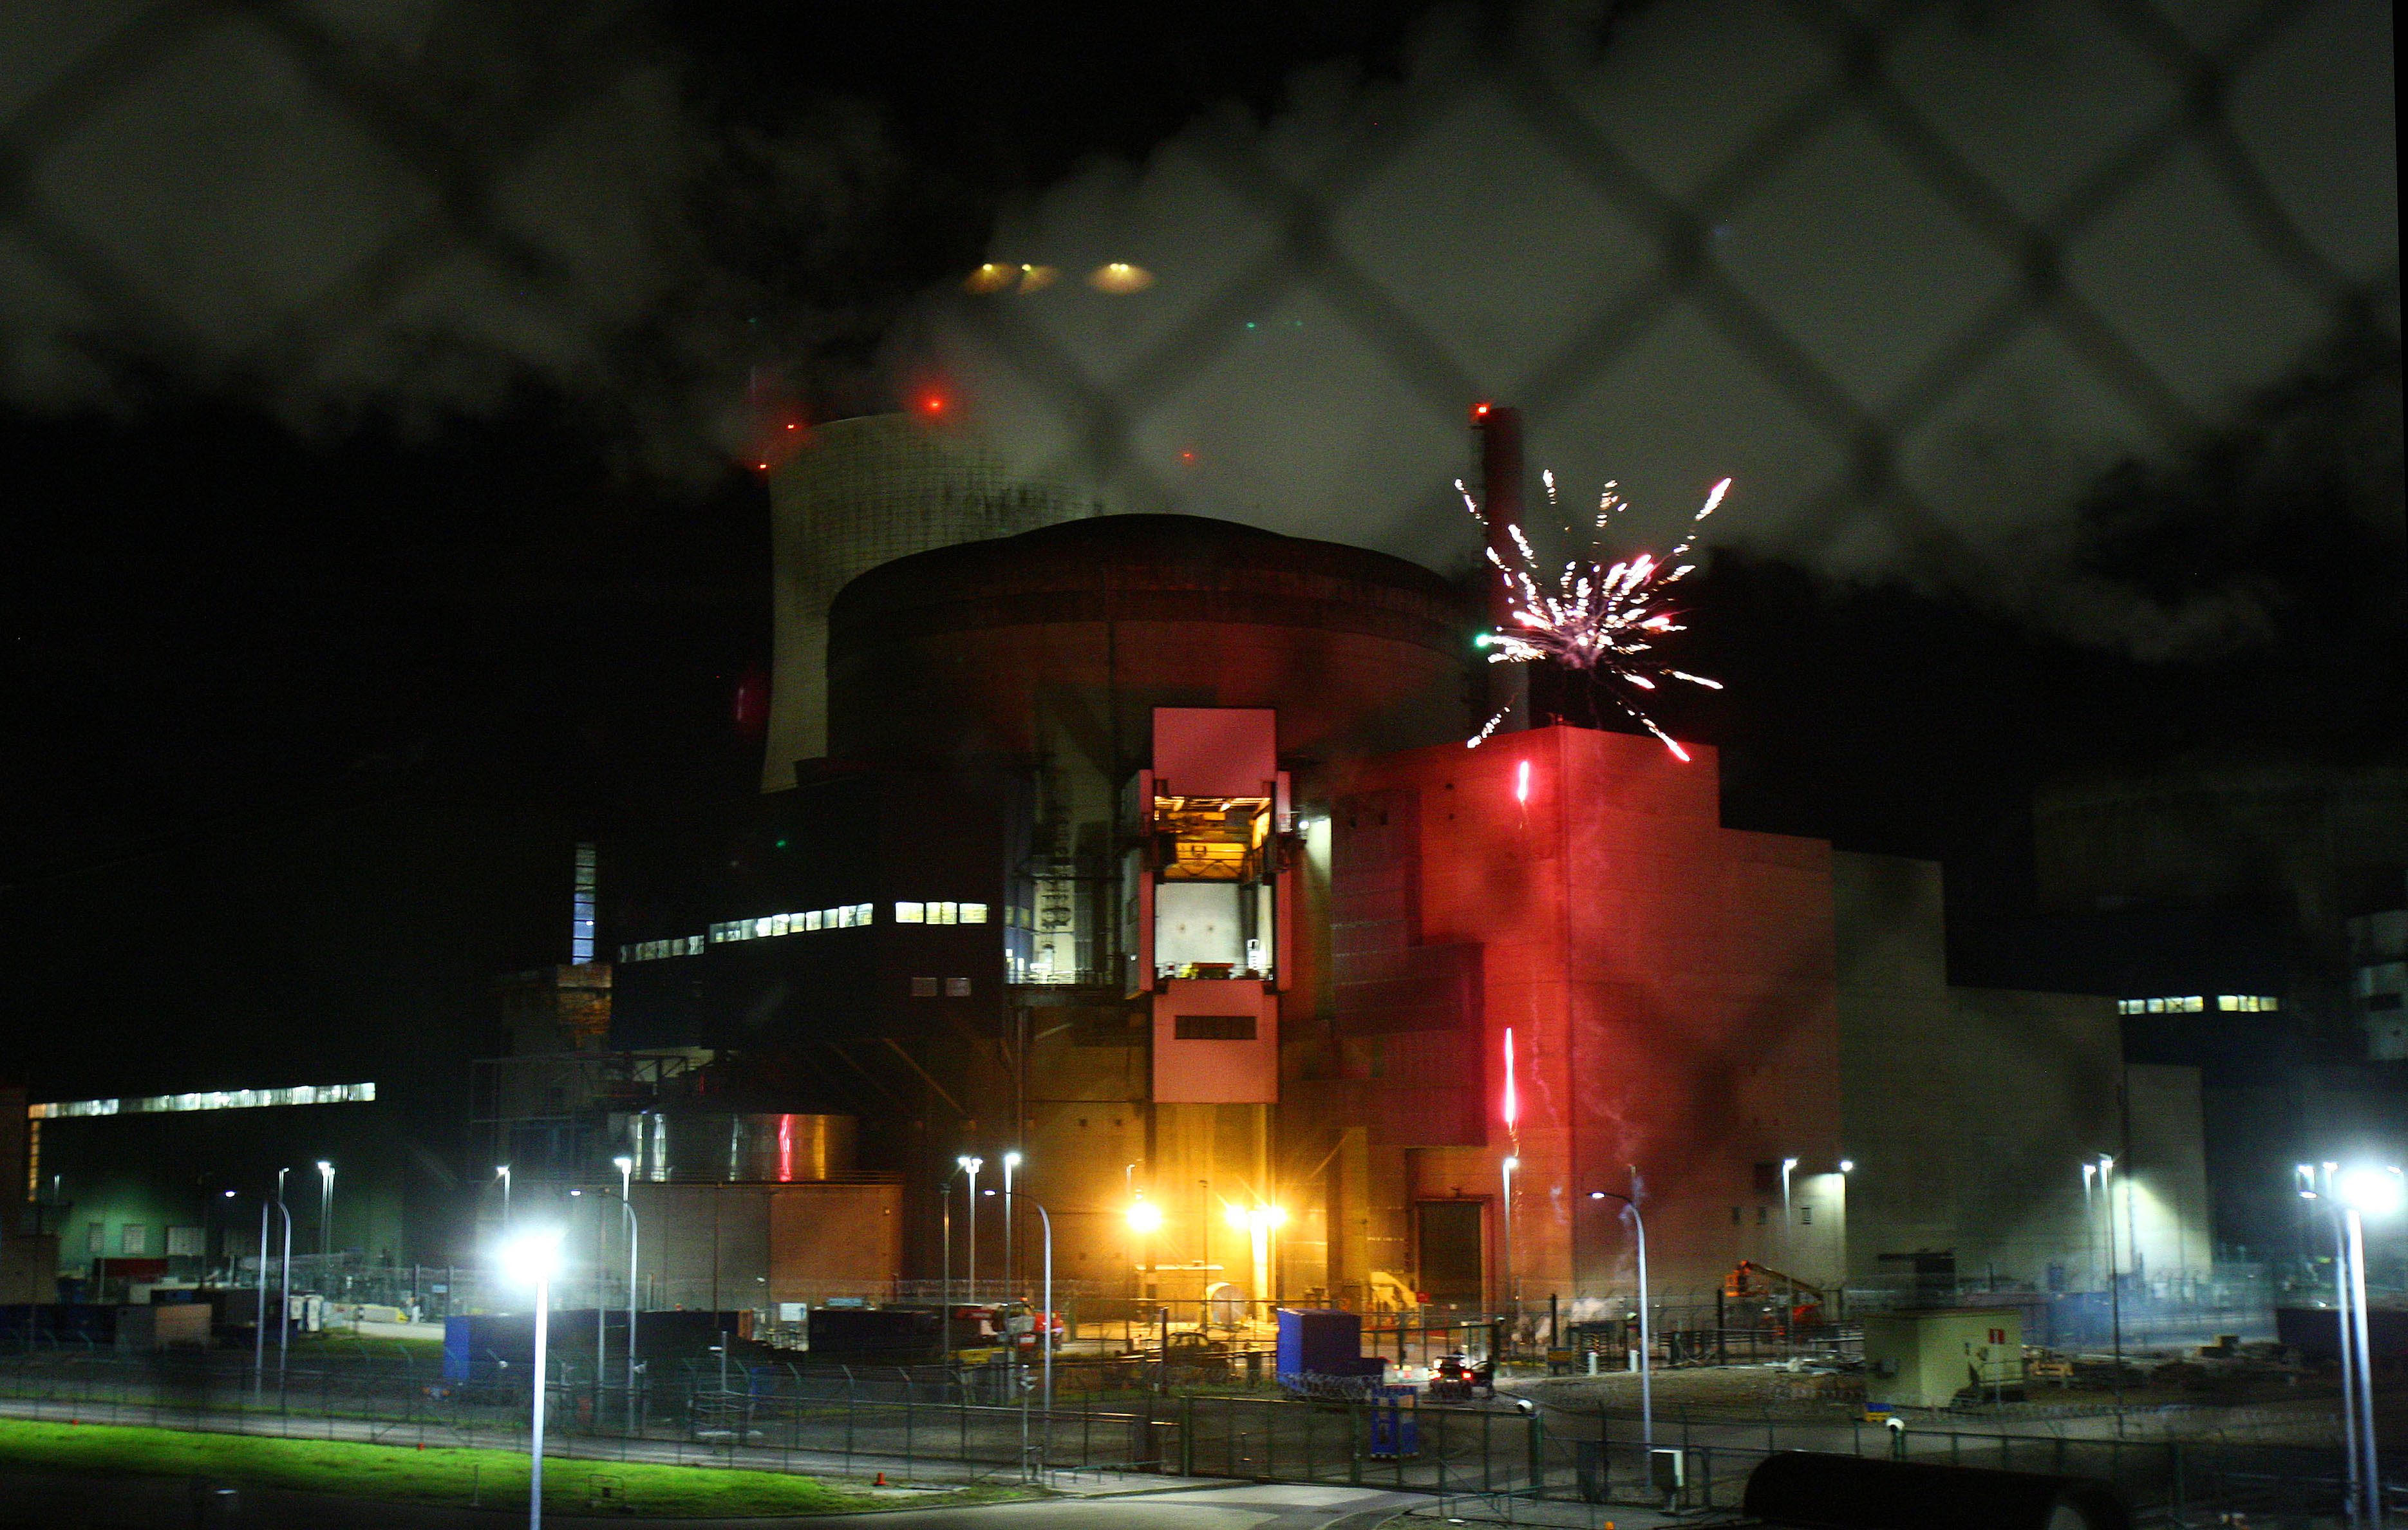 France Nuclear In this photo provided by Greenpeace France and dated Thursday, Oct. 12, 2017, Greenpeace activists set off fireworks inside the nuclear power plant of Cattenom, eastern France. Eight environmental activists are in custody after breaking into a French nuclear power station and setting off fireworks, in a bid to urge better protection for nuclear waste and protest France's dependence on atomic energy. (Greenpeace via AP)